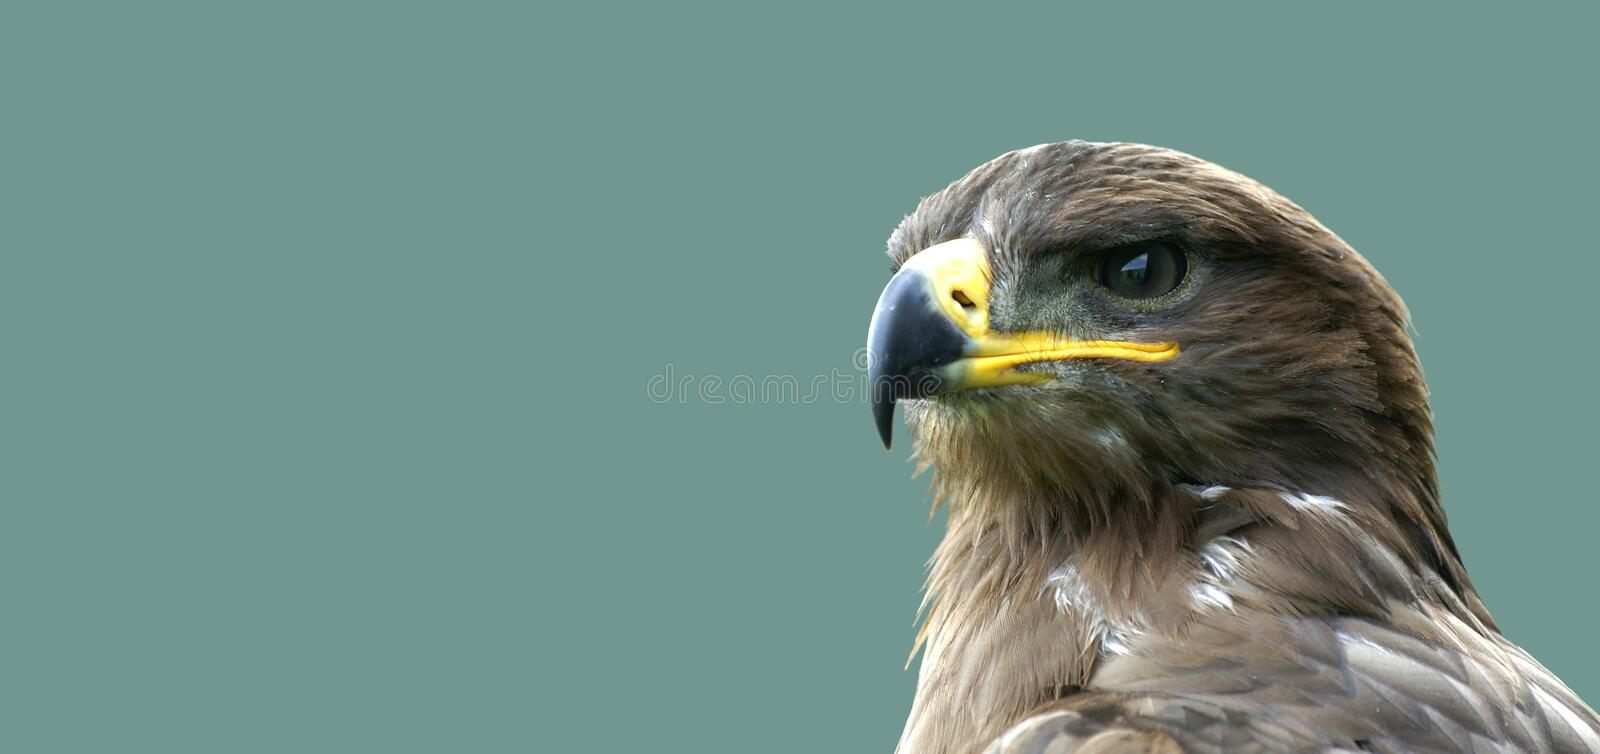 Proud looking golden eagle 2 royalty free stock photos